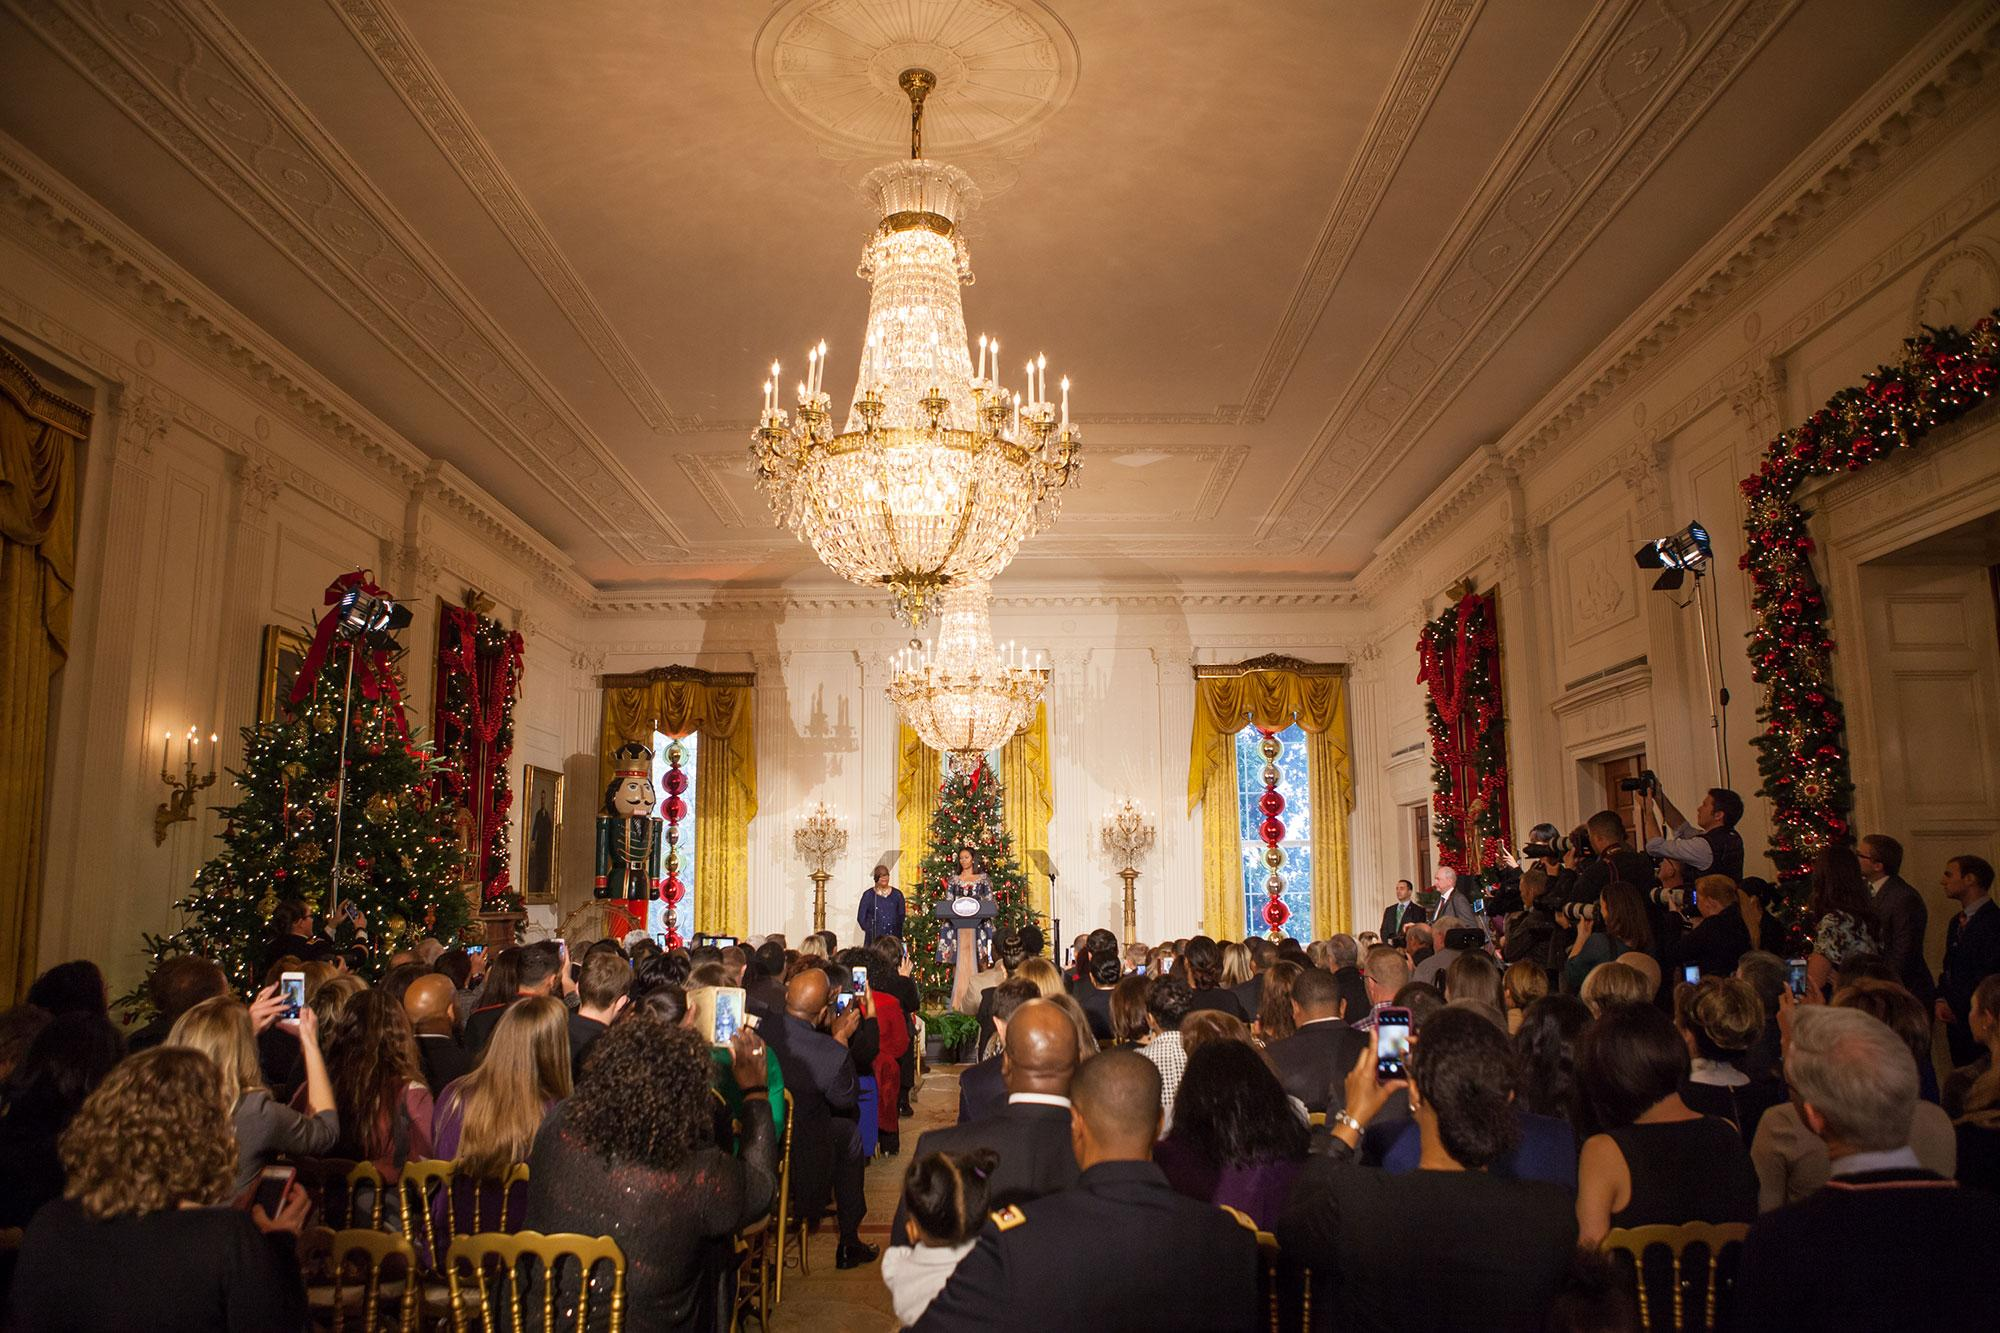 <p>On Tuesday, Nov. 29, in the East Room of The White House, As part of the Joining Forces initiative, First Lady Michelle Obama welcomed military families to the White House to view the 2016 holiday decorations. (Photo: Cheriss May/NurPhoto via Getty Images) </p>